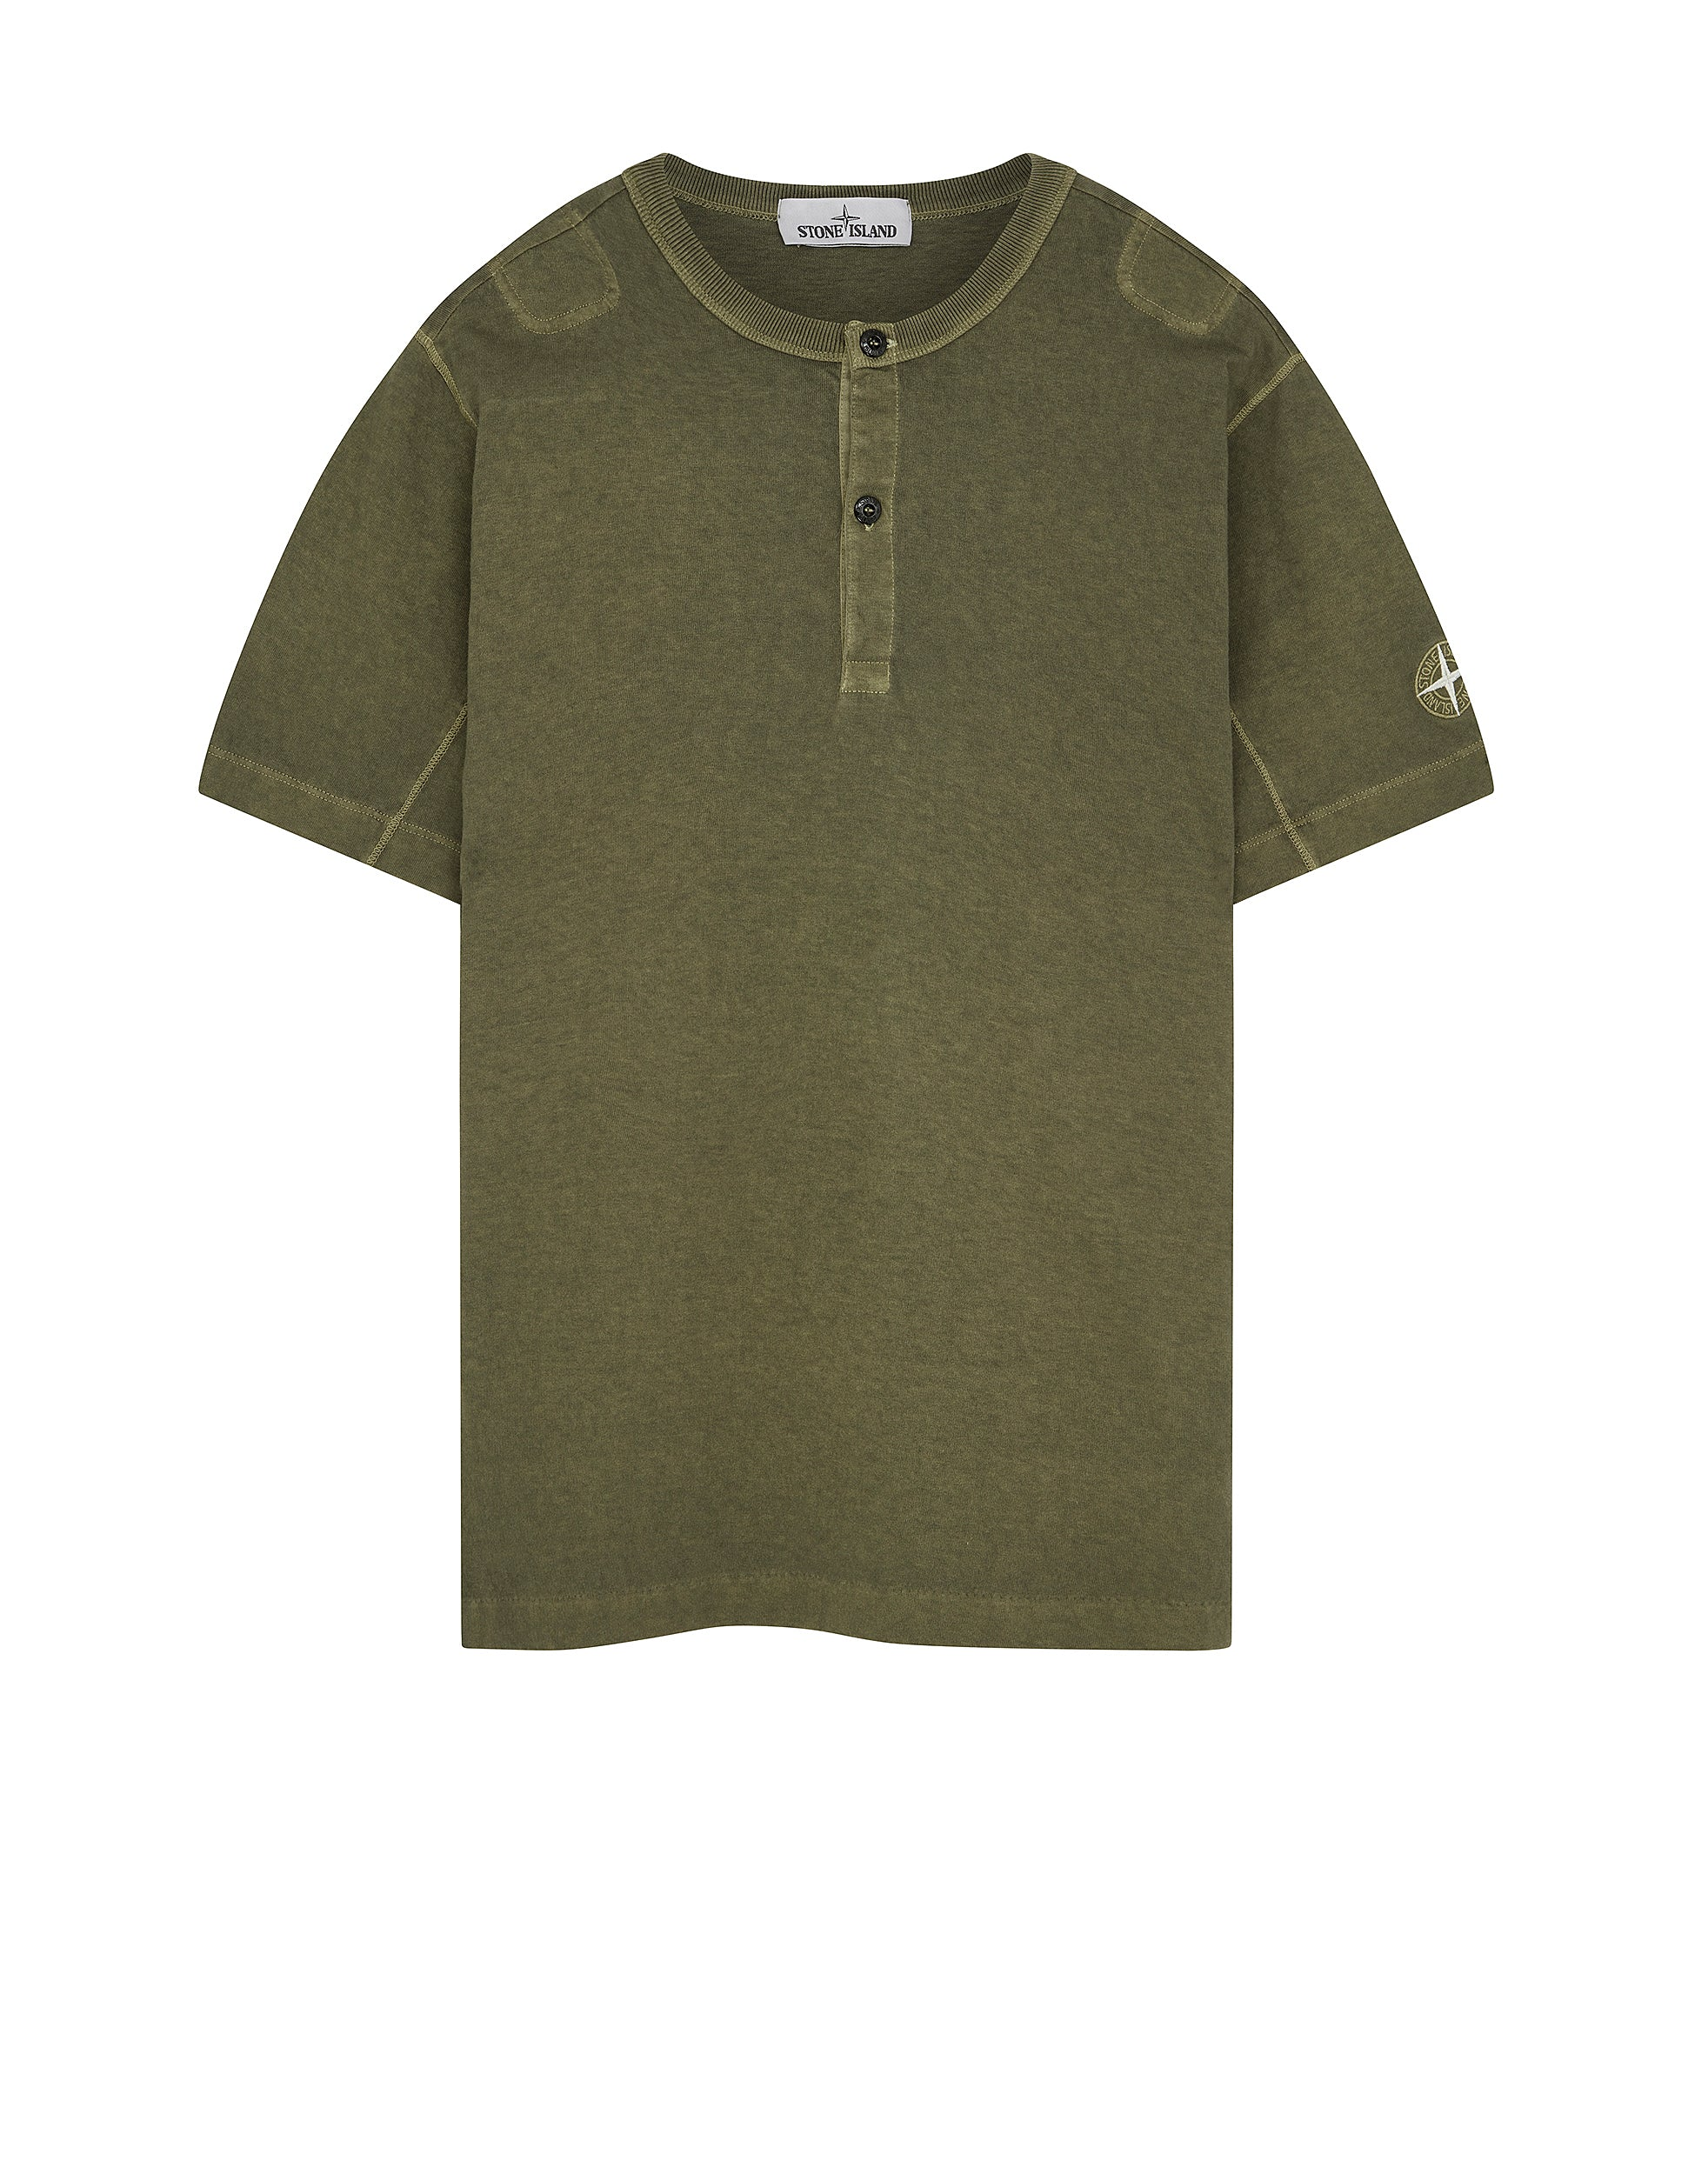 20842 'FISSATO' DYE TREATMENT T-Shirt in Olive